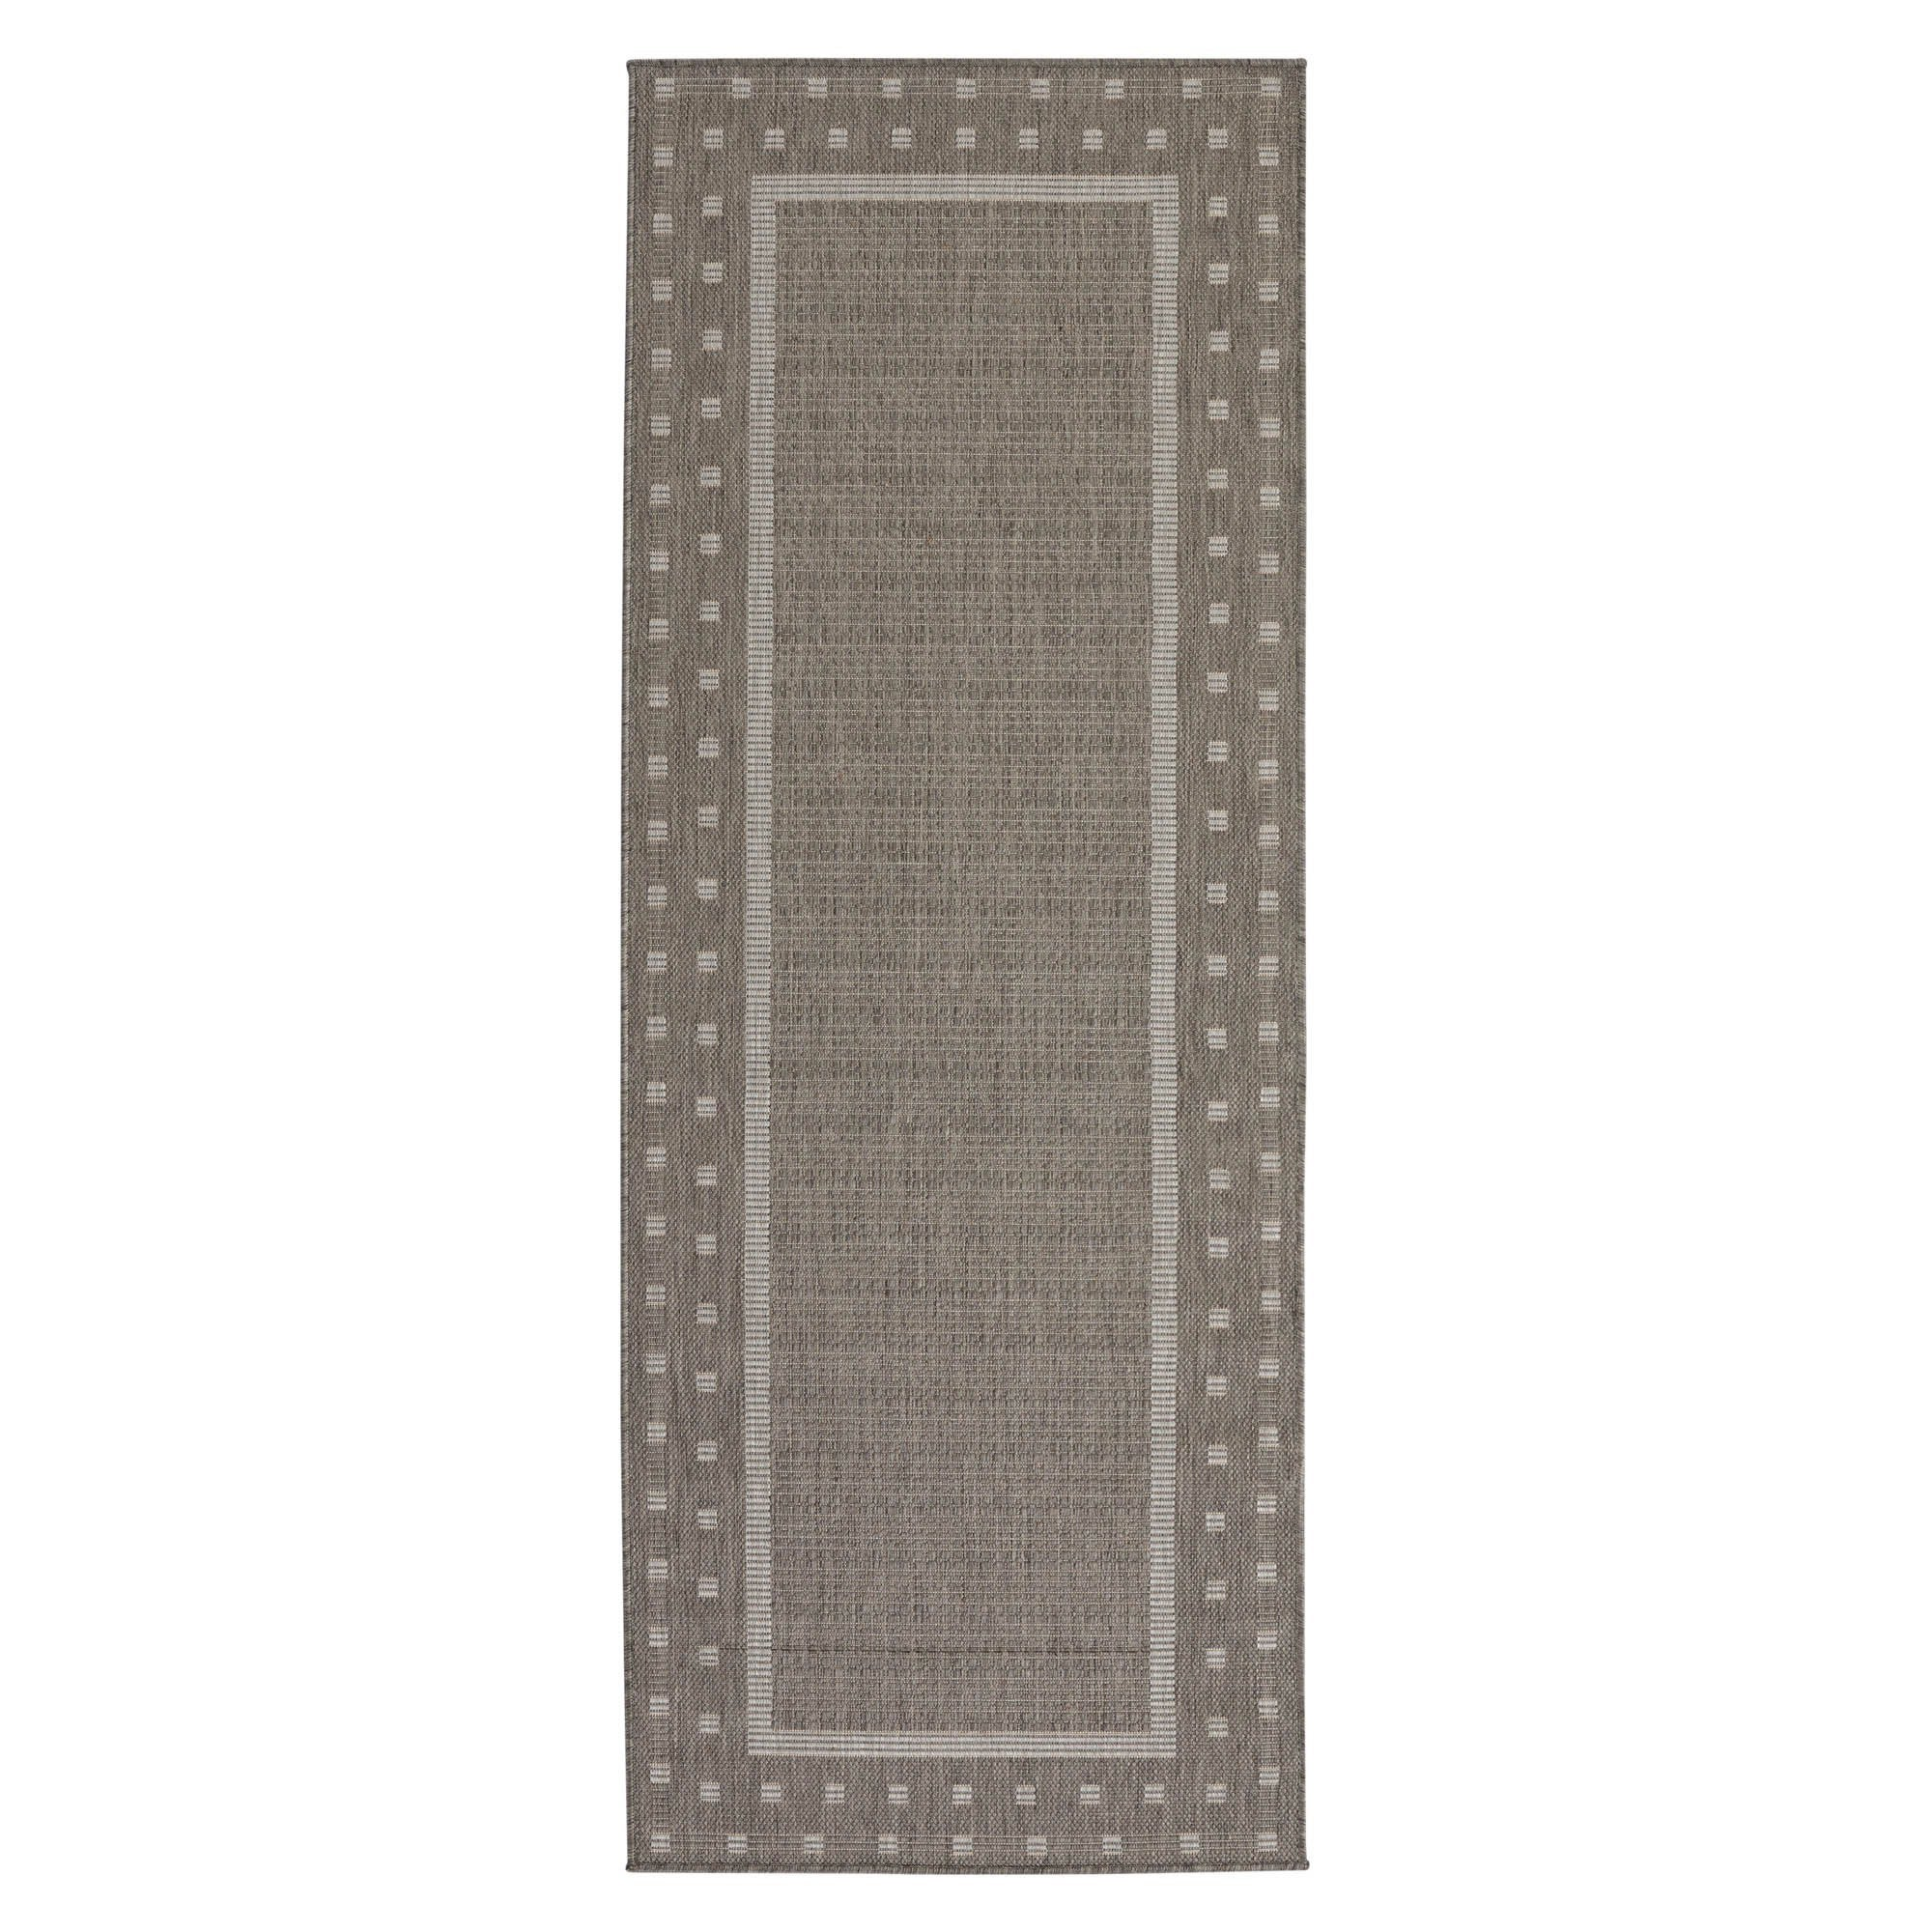 Ottomanson Jardin Collection Grey Contemporary Bordered Design Indoor Outdoor Area Rug 2 7 X Free Shipping On Orders Over 45 Com